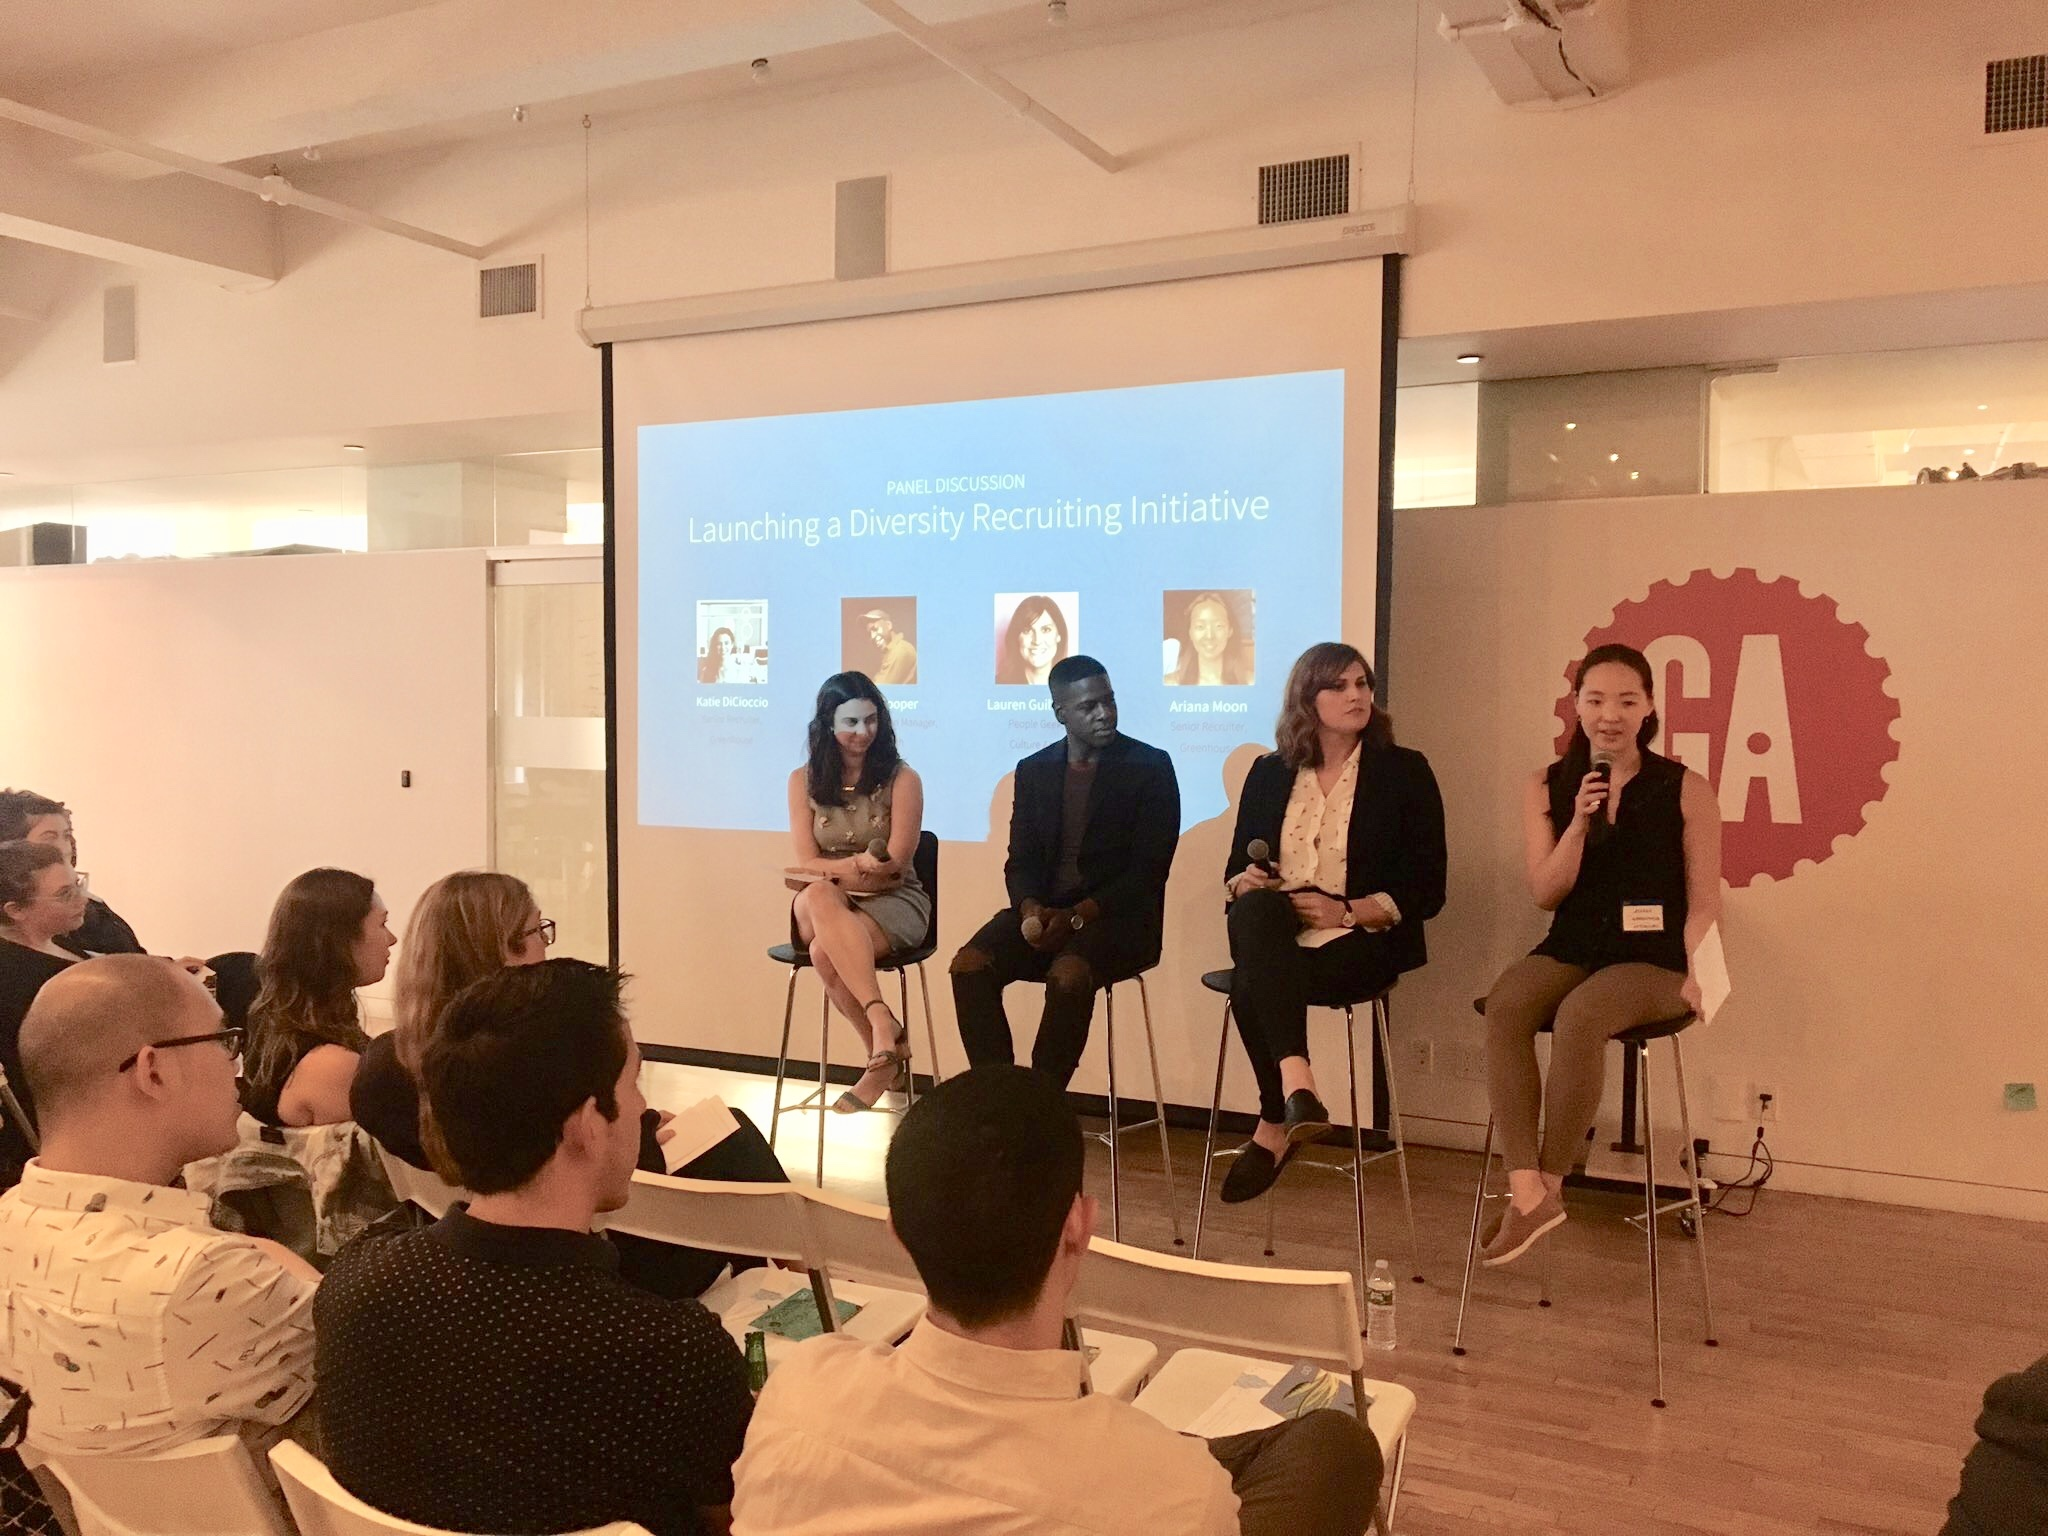 Four speakers from the Launching a Diversity Recruiting Initiative panel